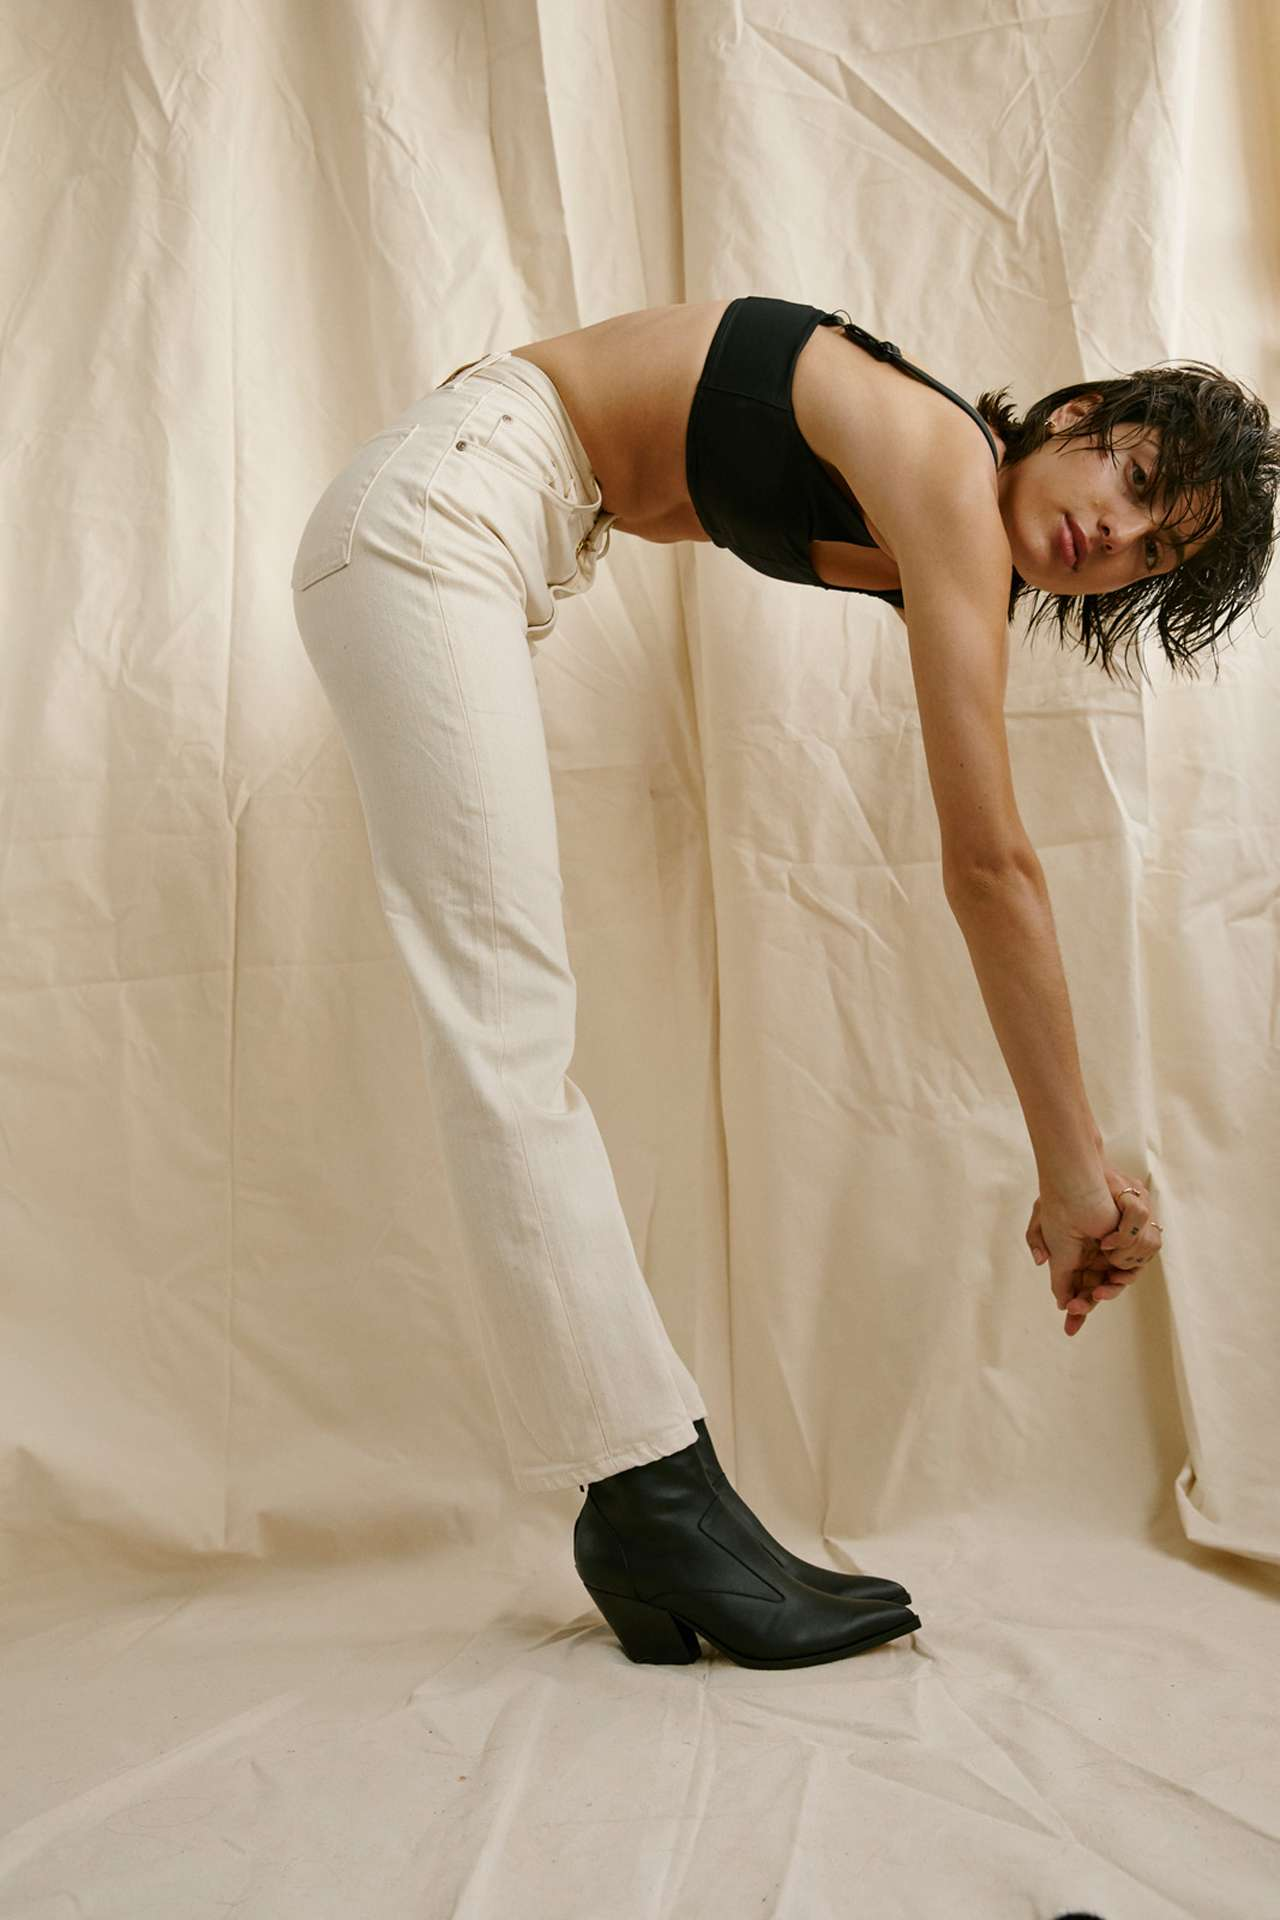 Premiere Adresse high fashion shop photographs by Kelly Jacob of man model crouching on the ground wearing cream button-up shirt and cream pants